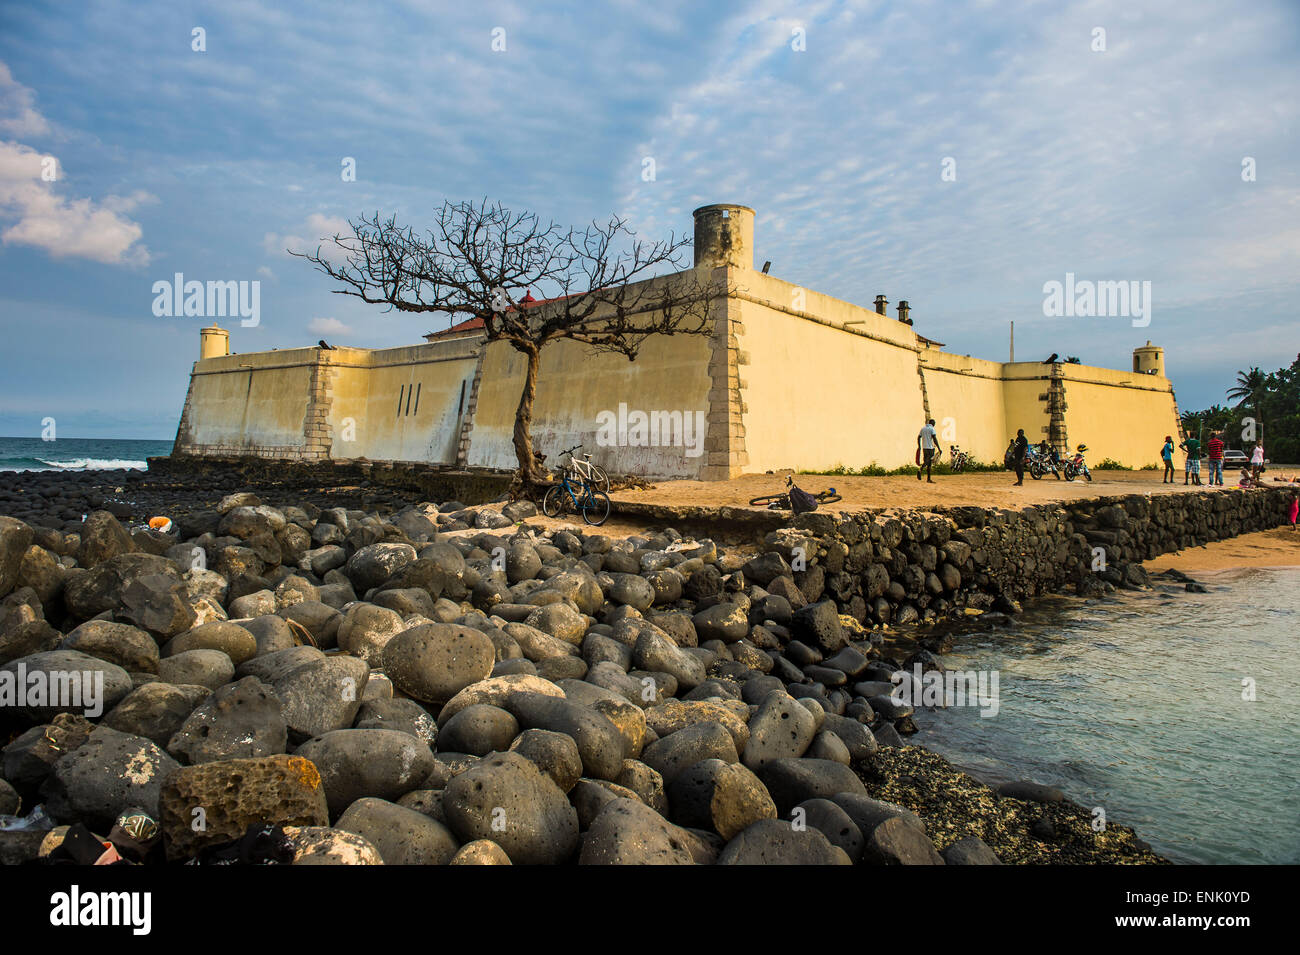 San Sebastian Fort, City of Sao Tome, Sao Tome and Principe, Atlantic Ocean, Africa - Stock Image